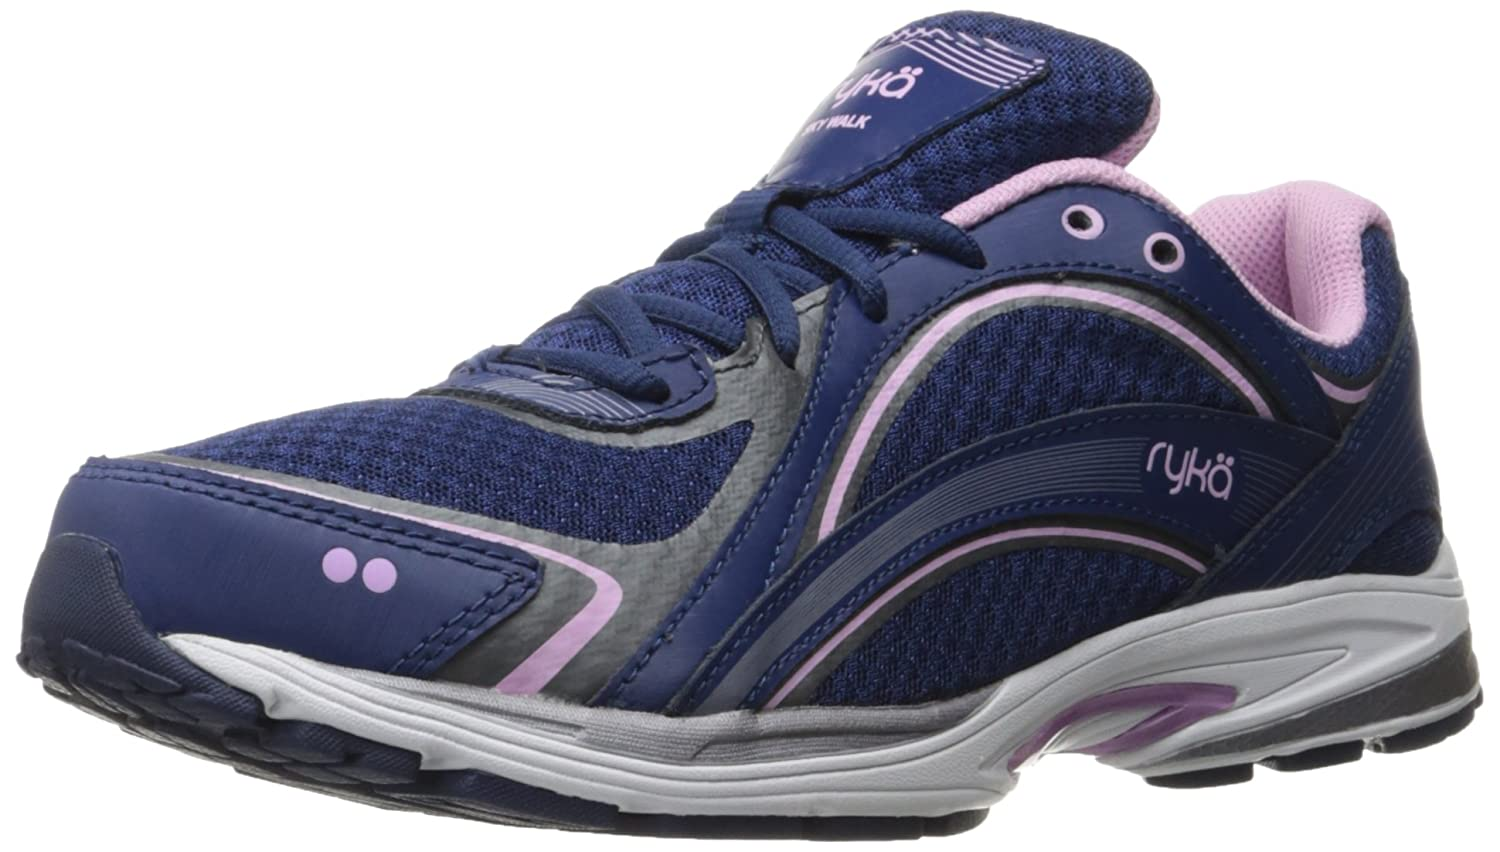 Ryka Women's Sky Walking Shoe B01A63CLB6 7.5 W US|Navy/Lilac